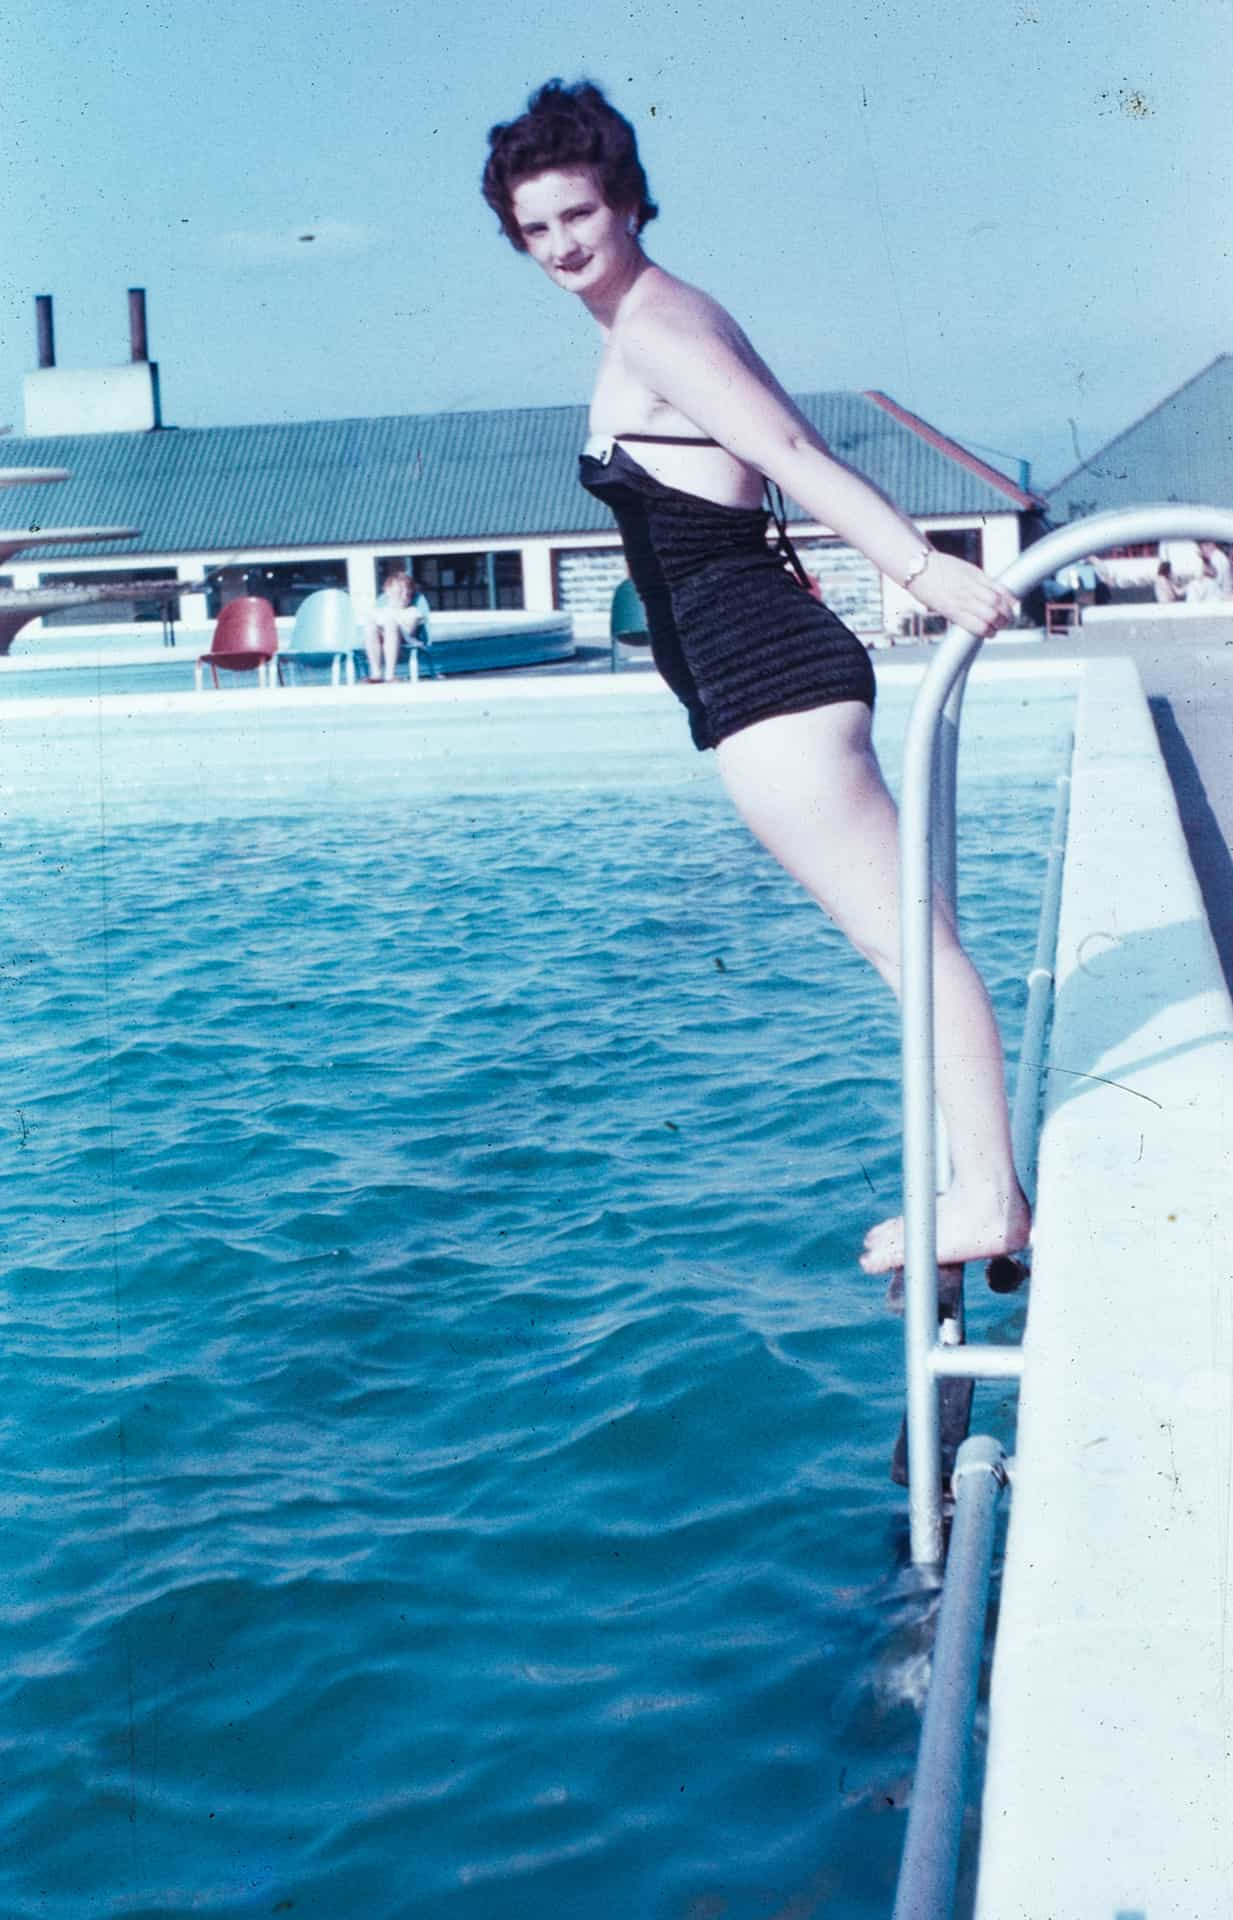 This is Rita at the same holiday camp about to take a dip.